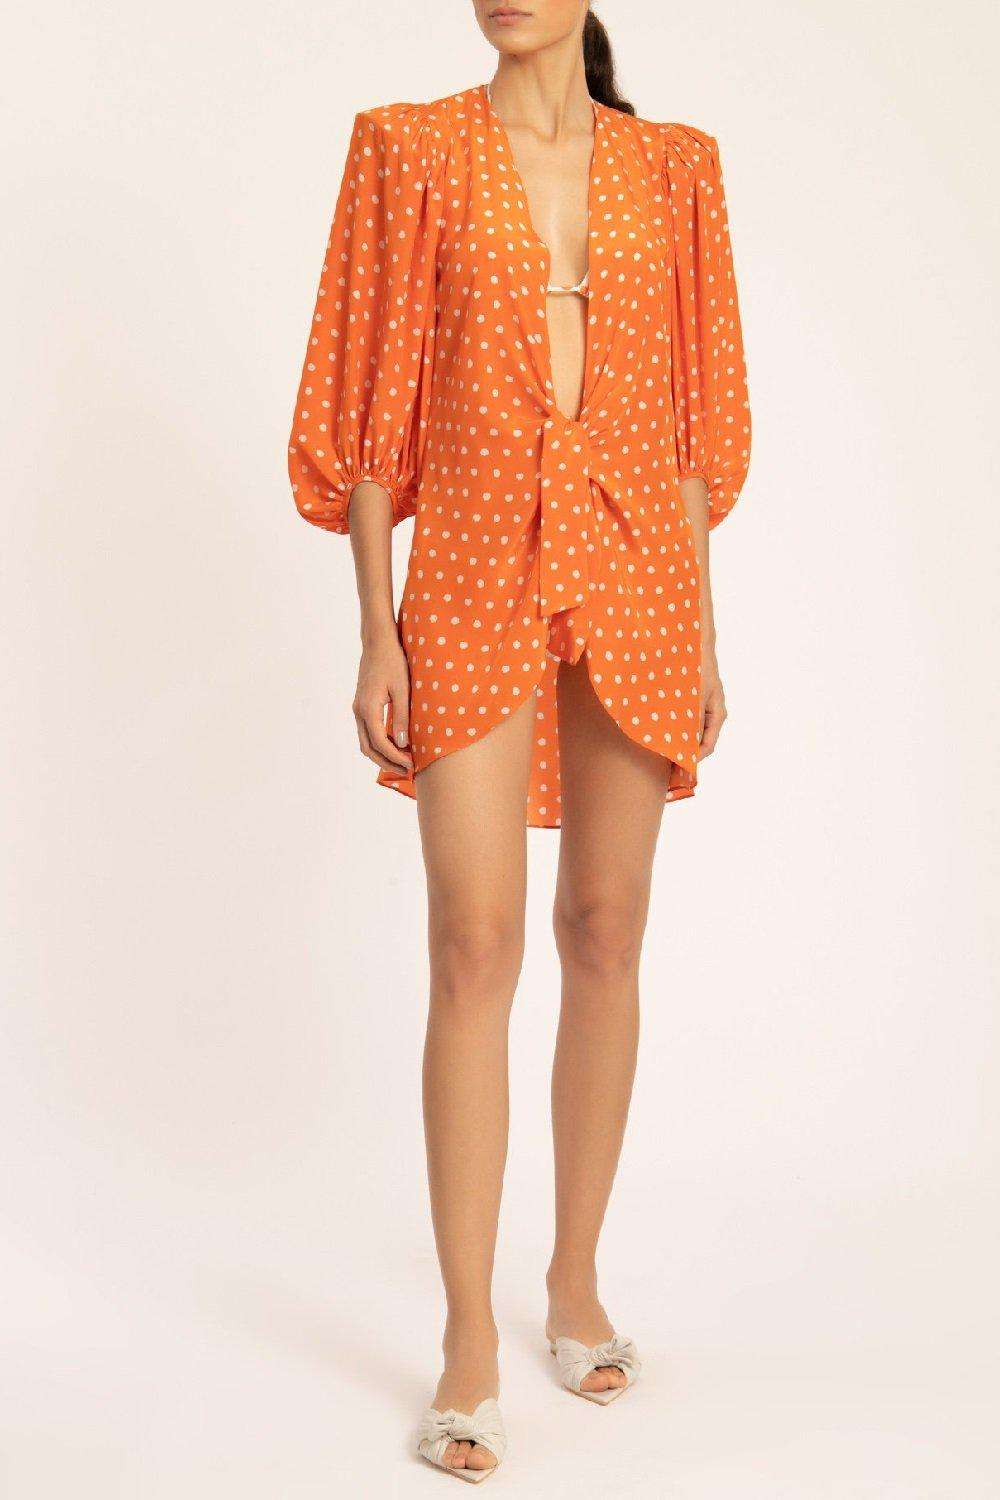 Tangerine Pois Shirt With Voluminous Sleeves And Knot